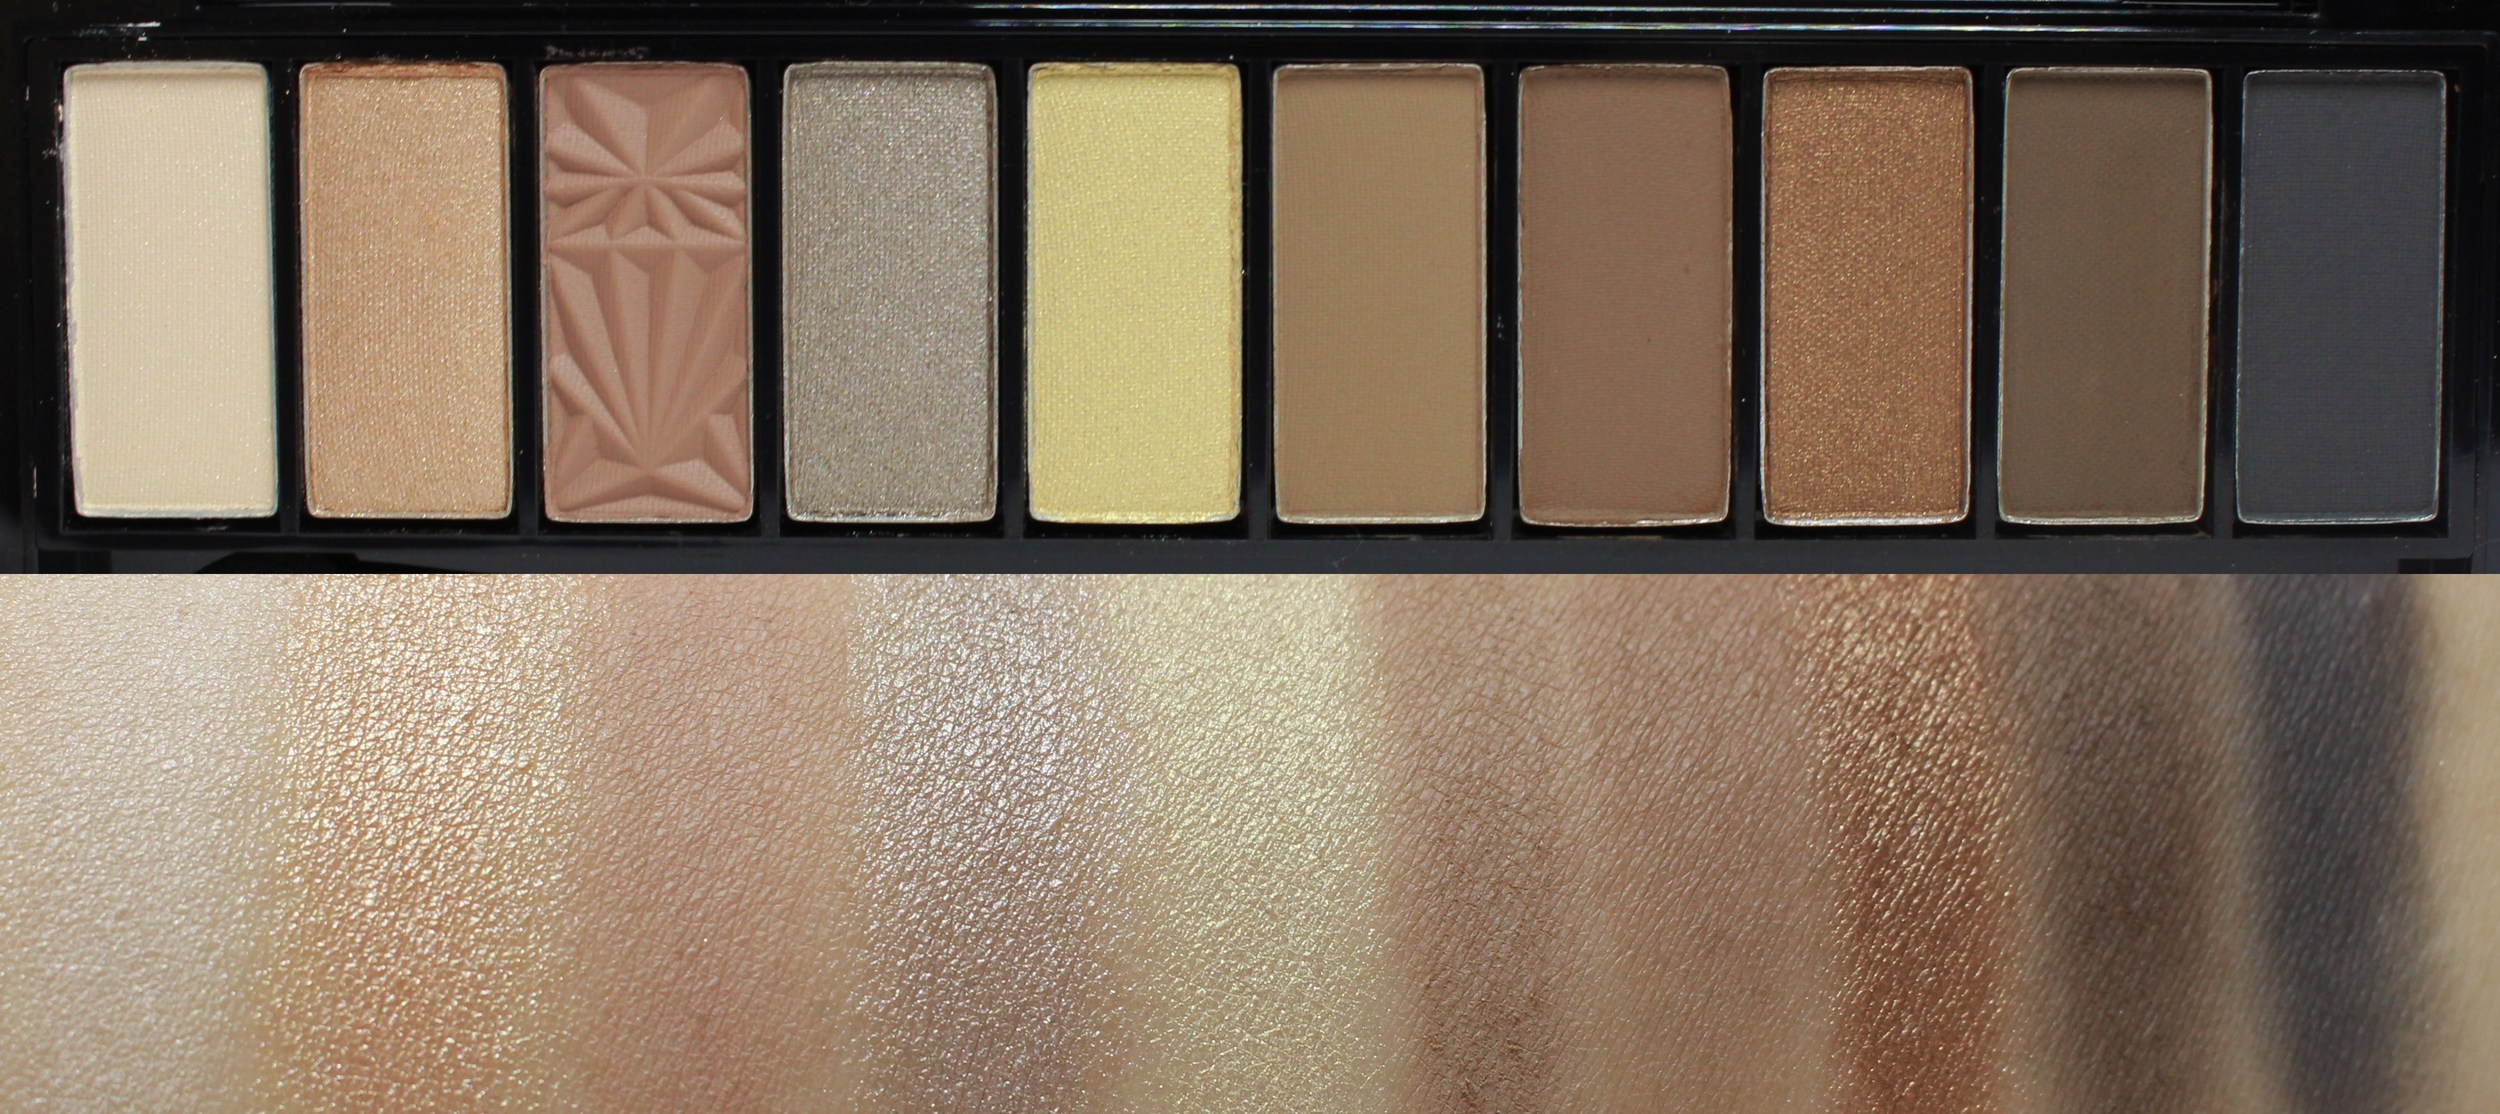 Swatches of L'Oreal La Palette Nude in Beige